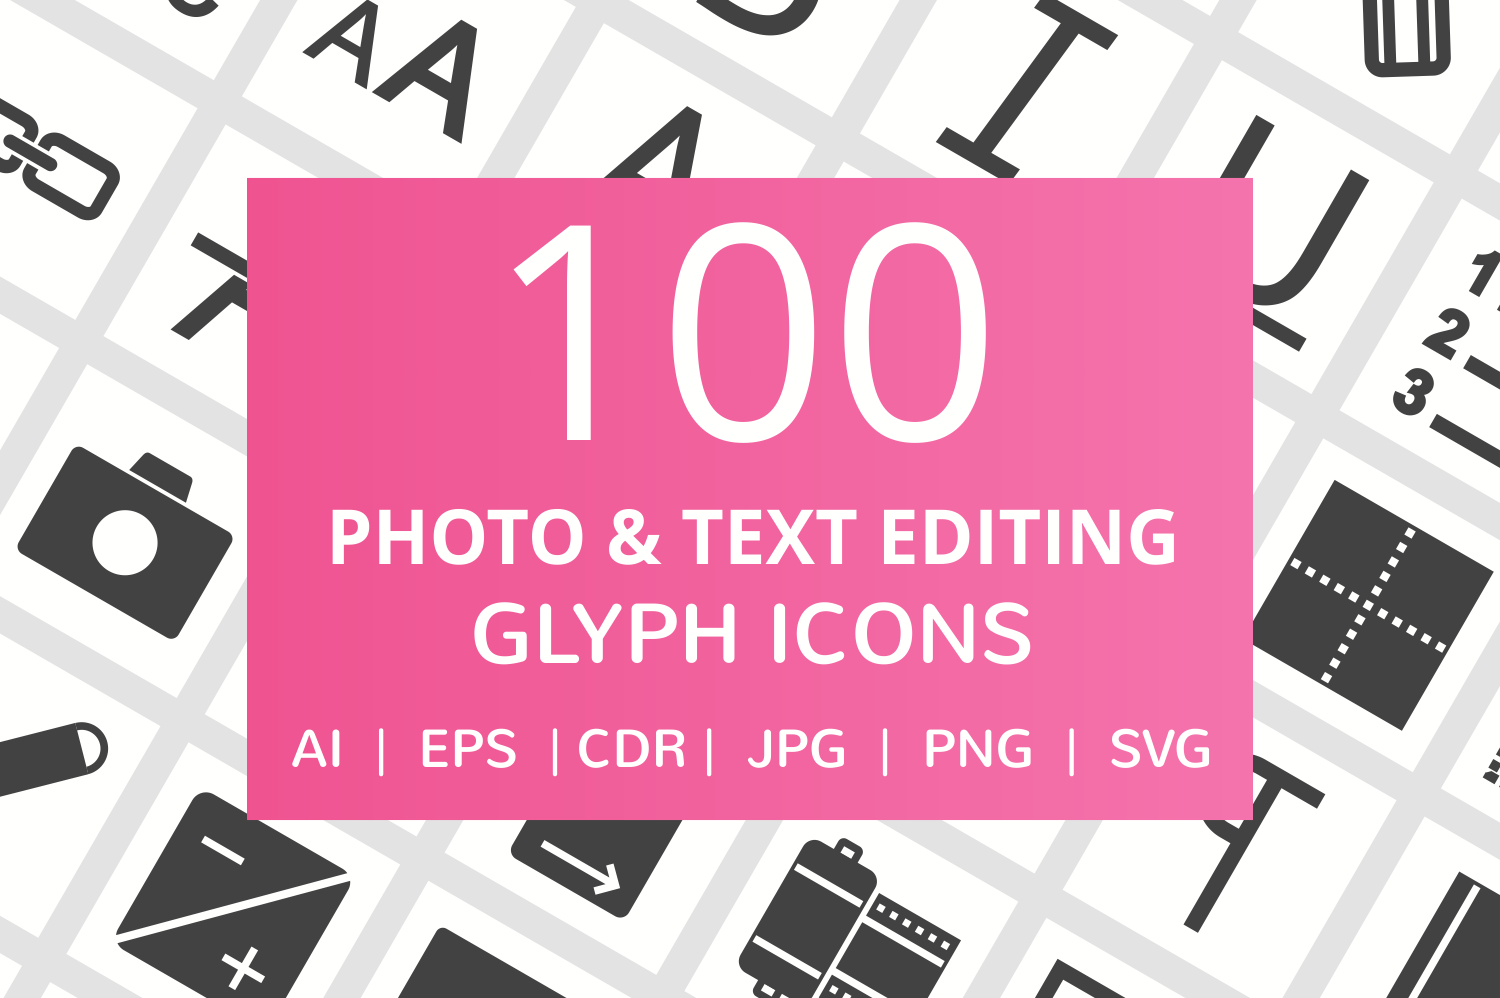 100 Photo & Text Editing Glyph Icons example image 1